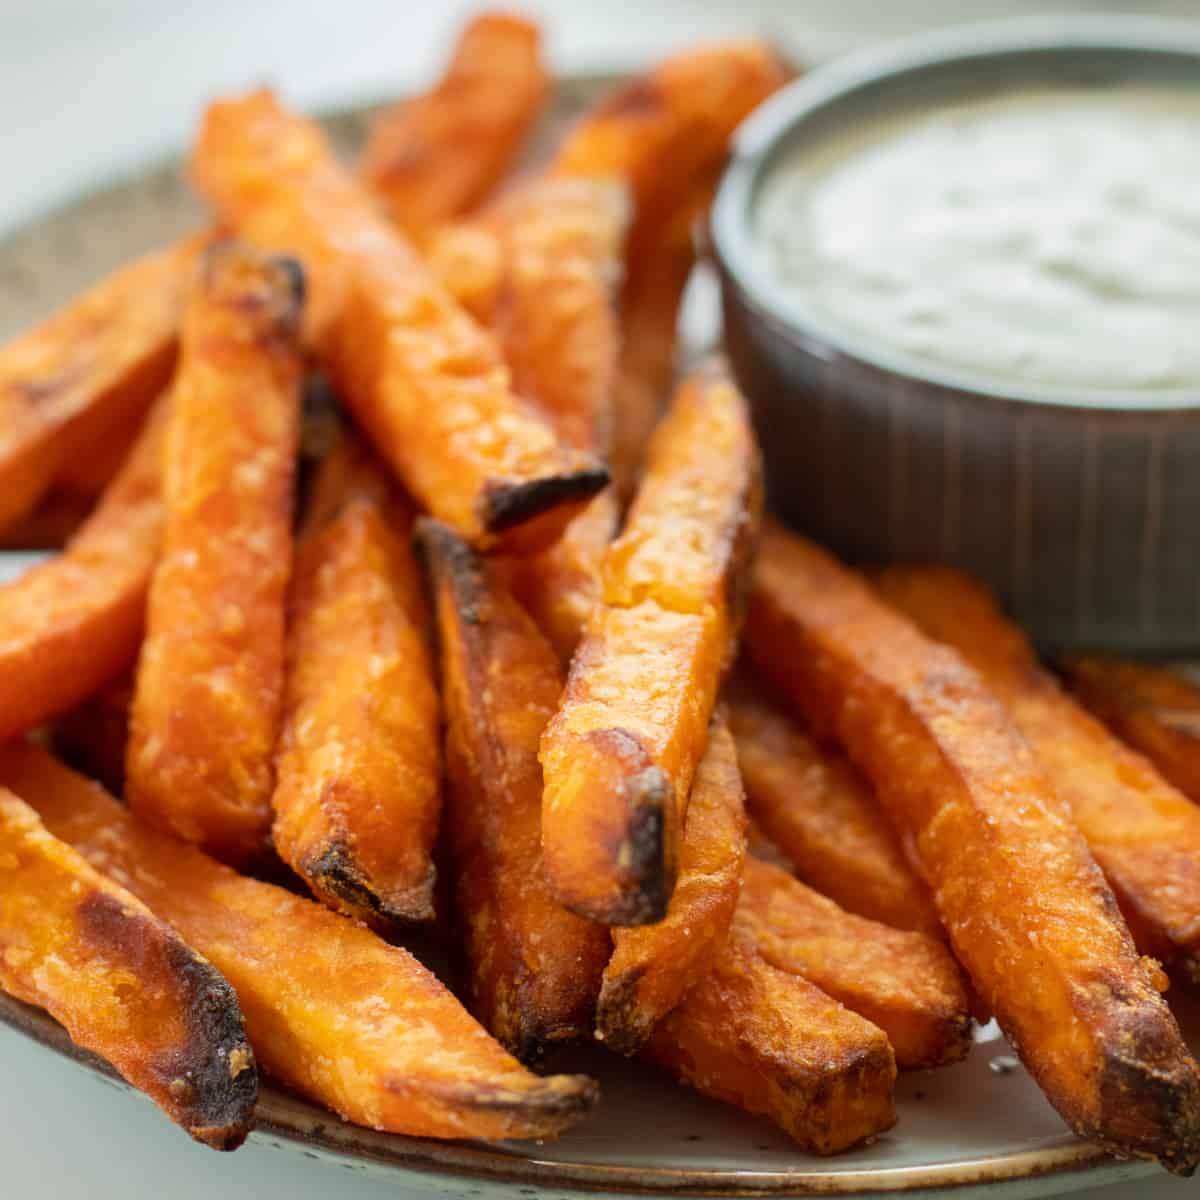 sweet potatoes on a plate next to a dipping sauce